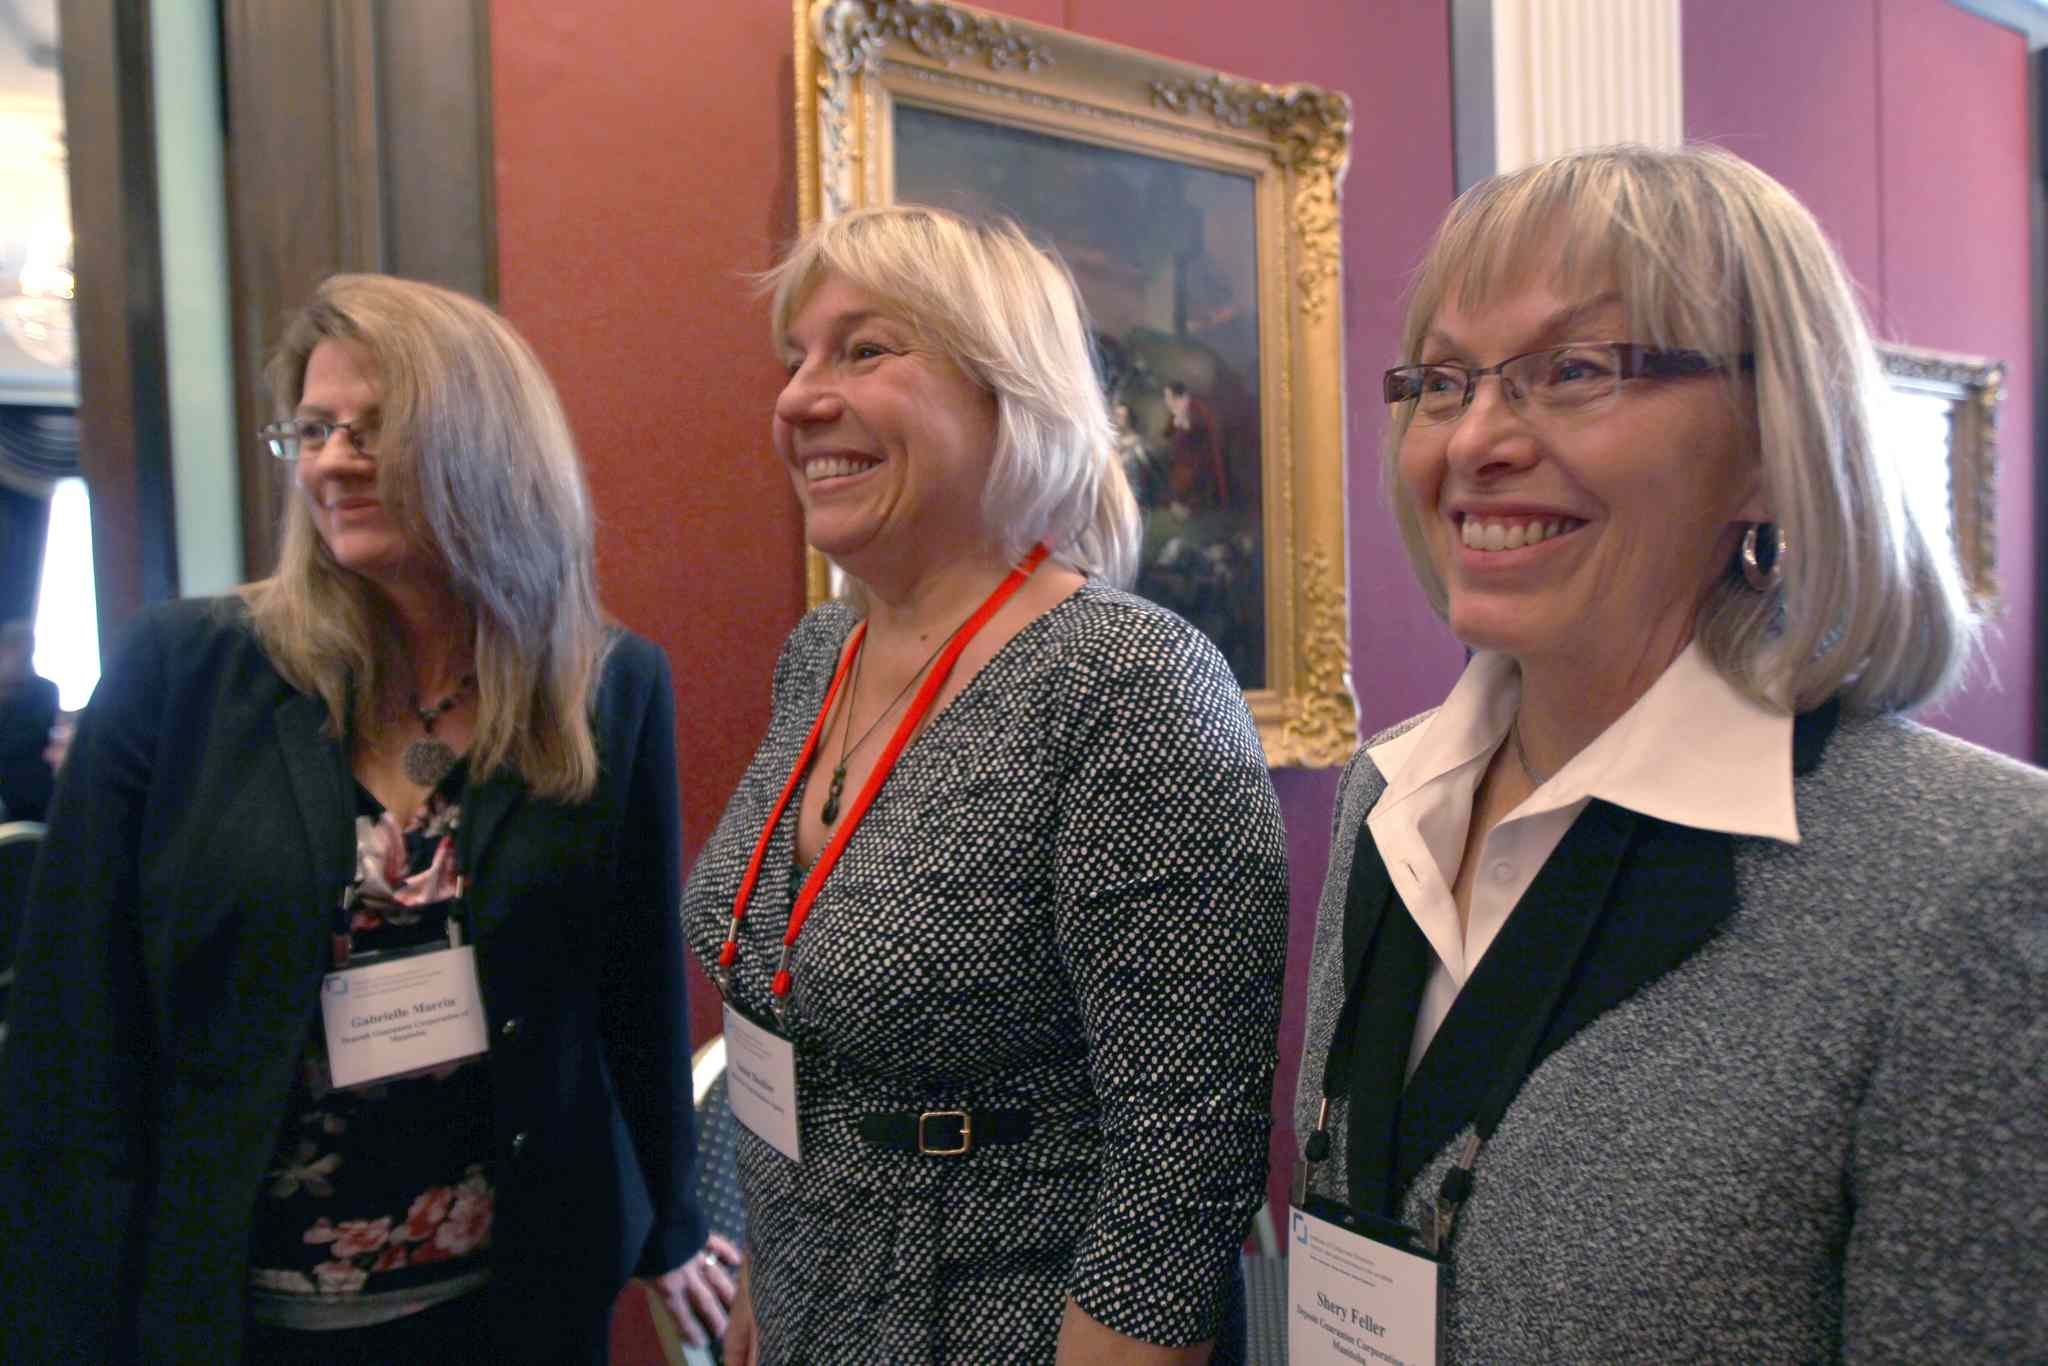 Gabrielle Marrin, left, and Shery Feller, right, of the Deposit Guarantee Corporation of Manitoba are joined by Susan Boulter, director of Manitoba Vital Statistics Agency, at a luncheon Wednesday.